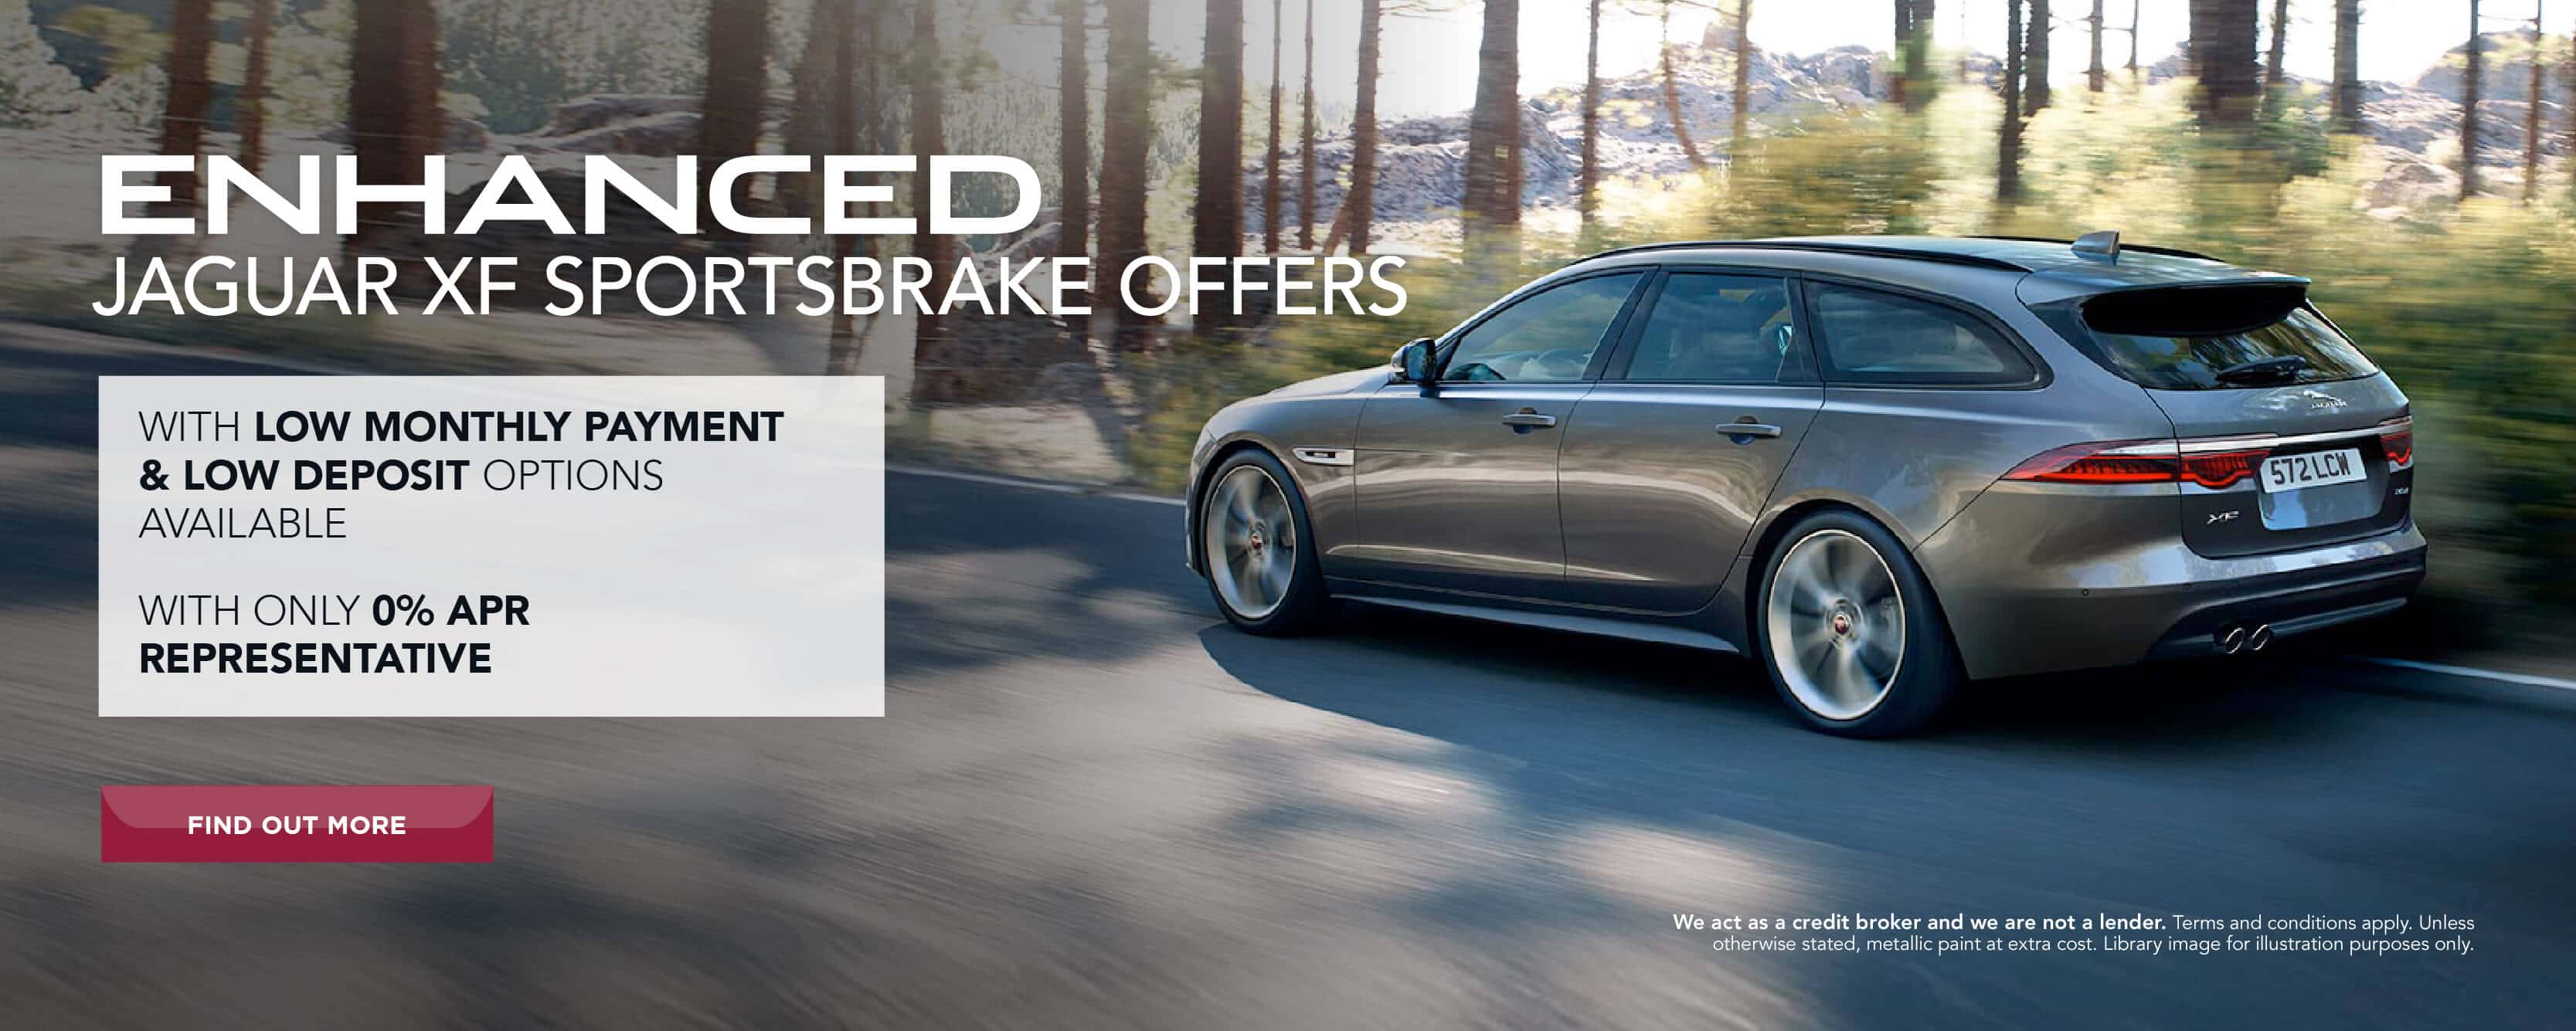 Jaguar enhanced XF Sportsbrake offers BB